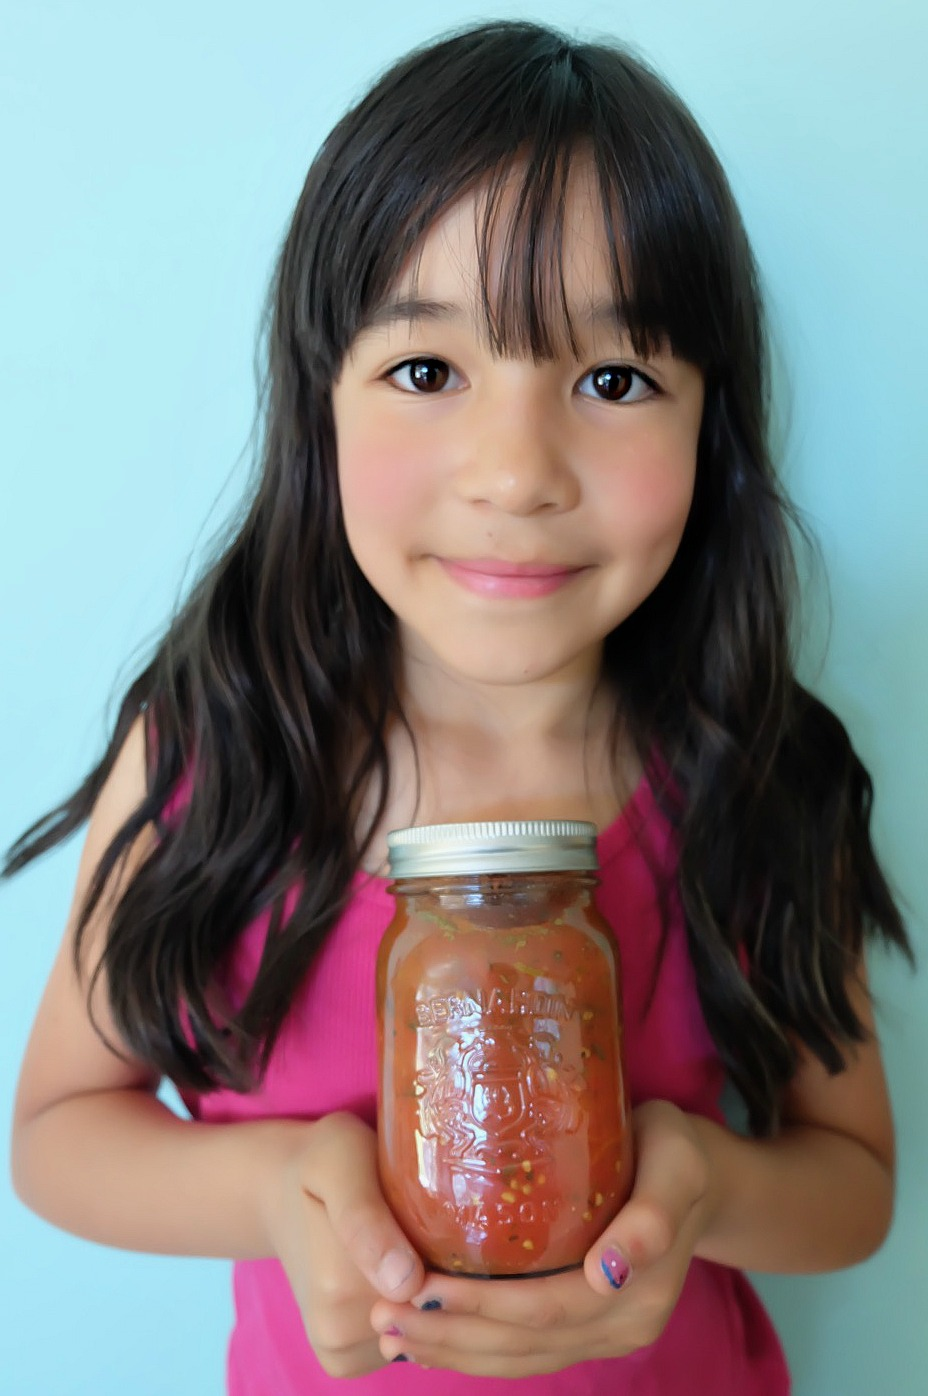 Get canning with your family this summer! We're sharing our top tips for canning with kids along with step by step photos and instructions for how to make our Easy Italian Herb Canned Tomatoes Recipe! We take all the intimidation out of canning so you can pass this handmade art along to your kids! #Canning #Recipe #Tomatoes #KidsCooking